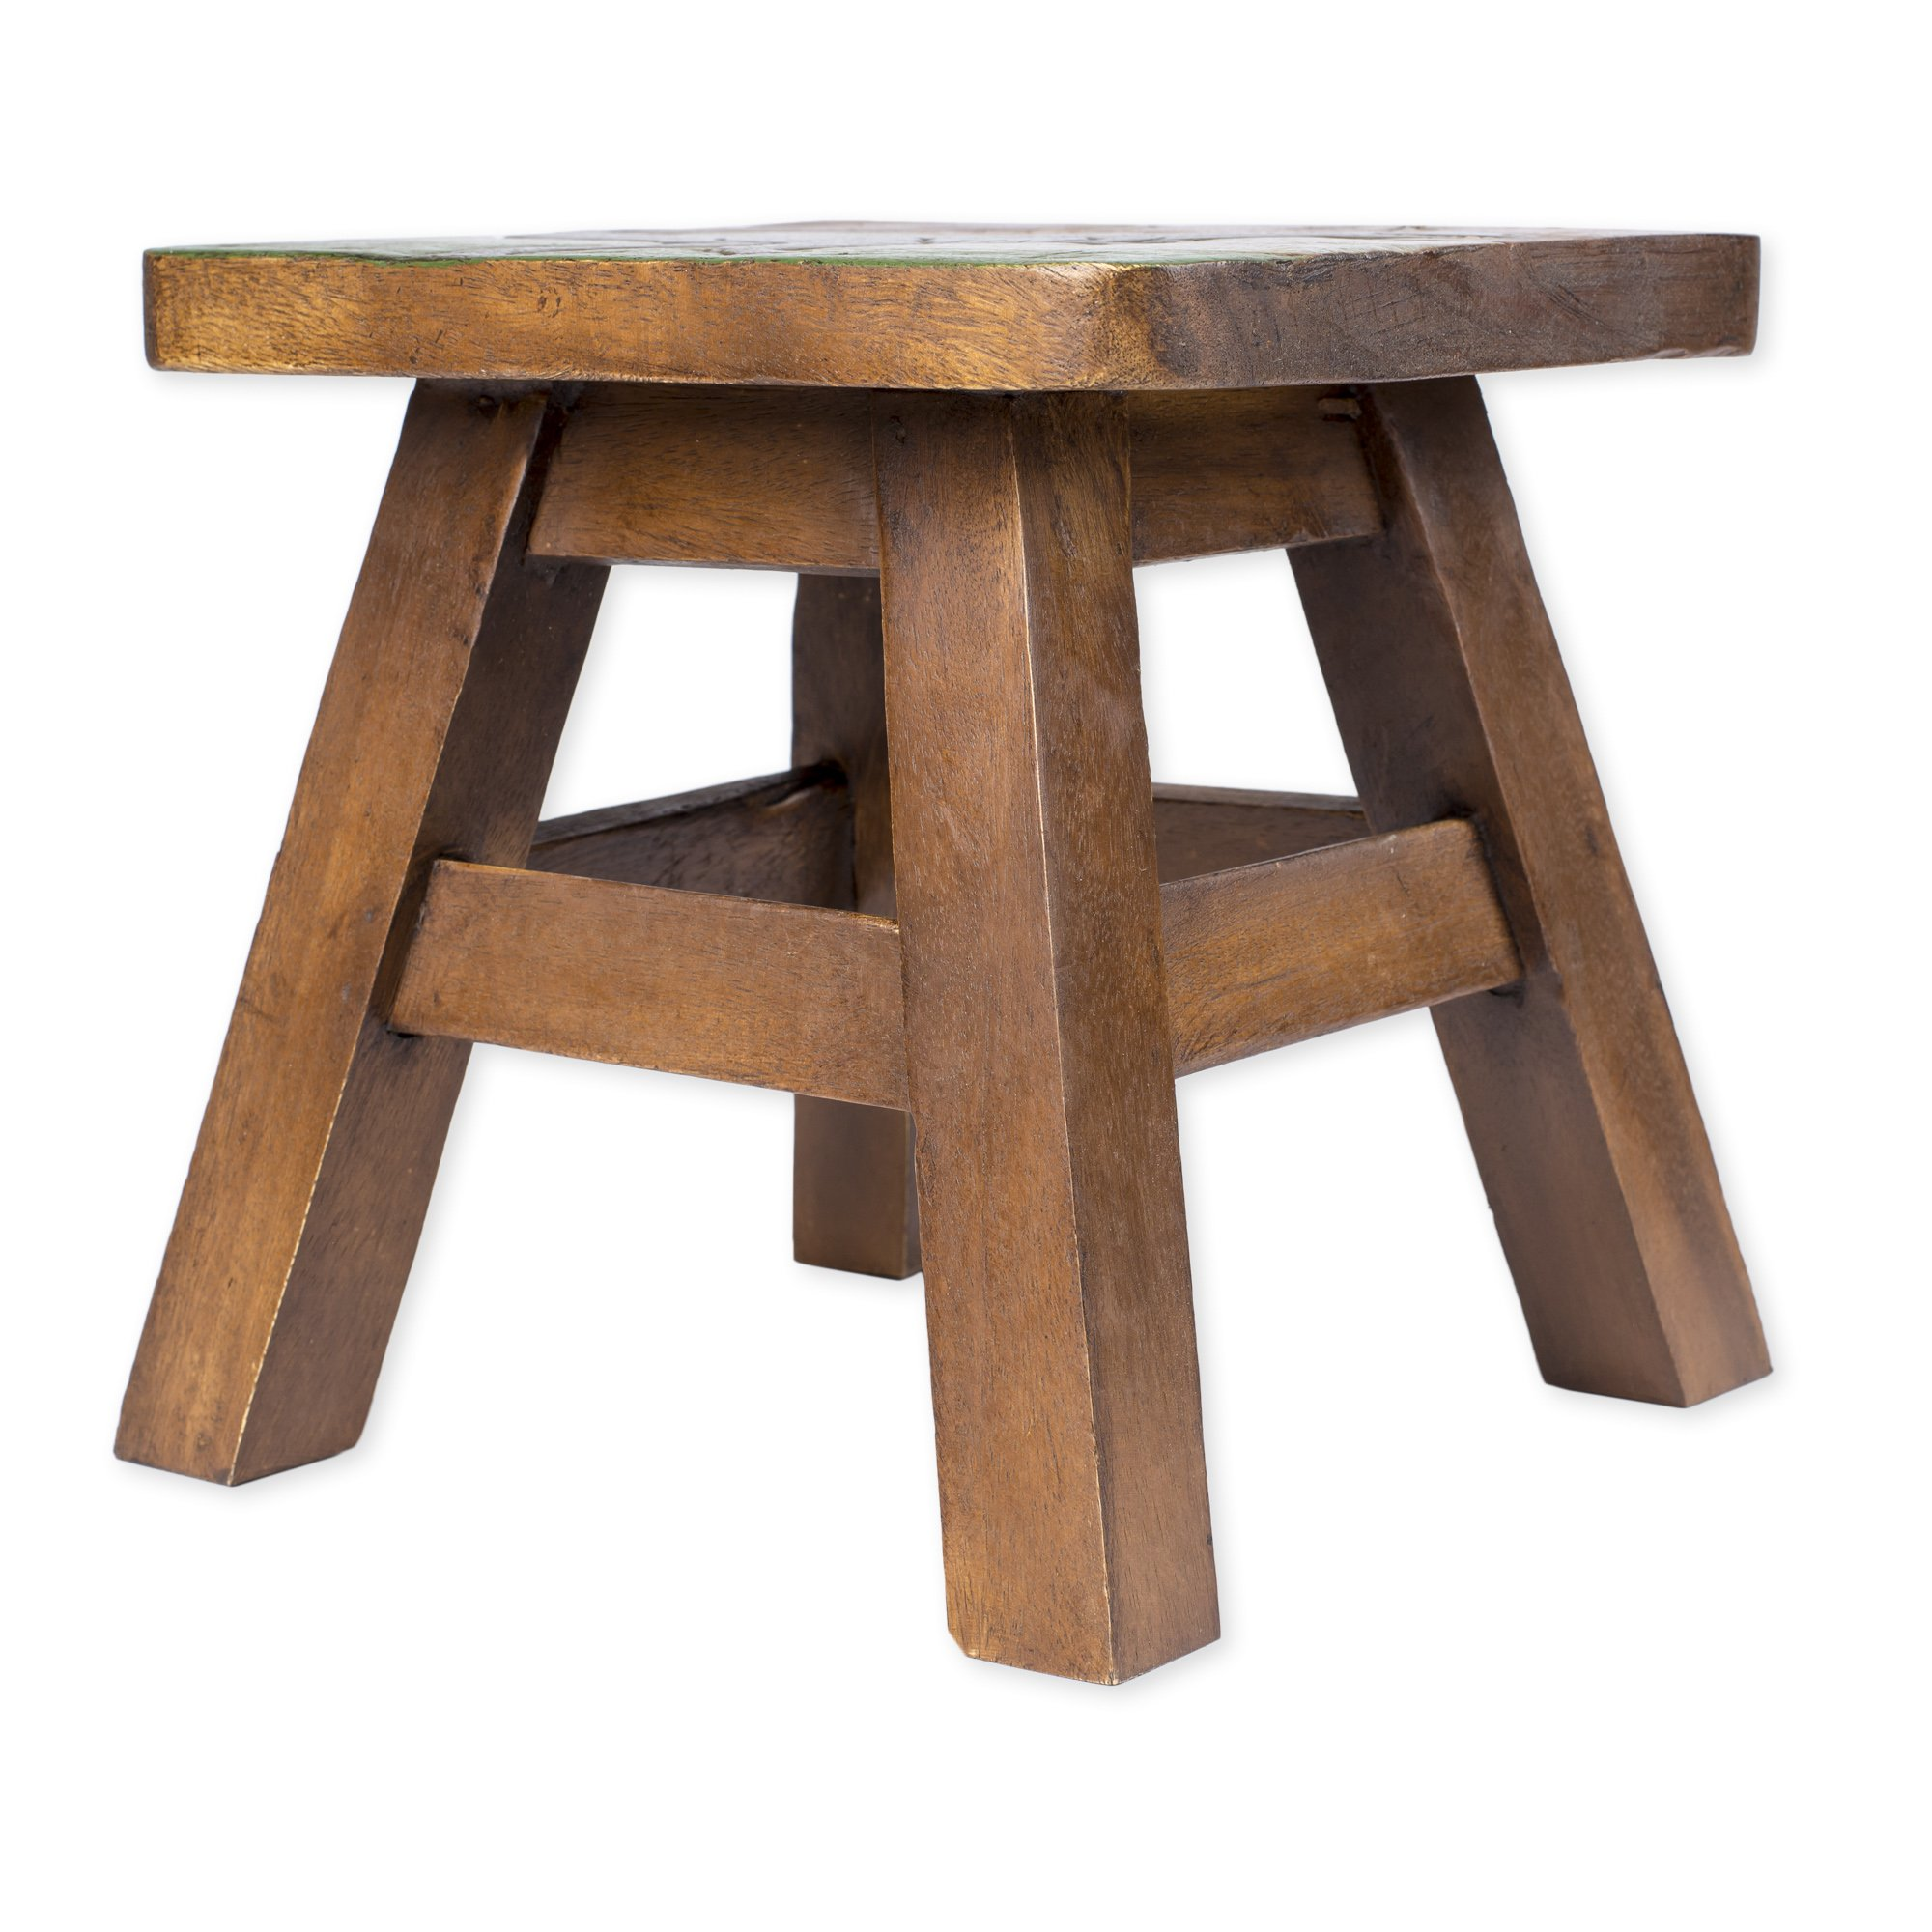 Tyrannosaurus Rex Dinosaur Design Hand Carved Acacia Hardwood Decorative Short Stool by Sea Island Imports (Image #3)